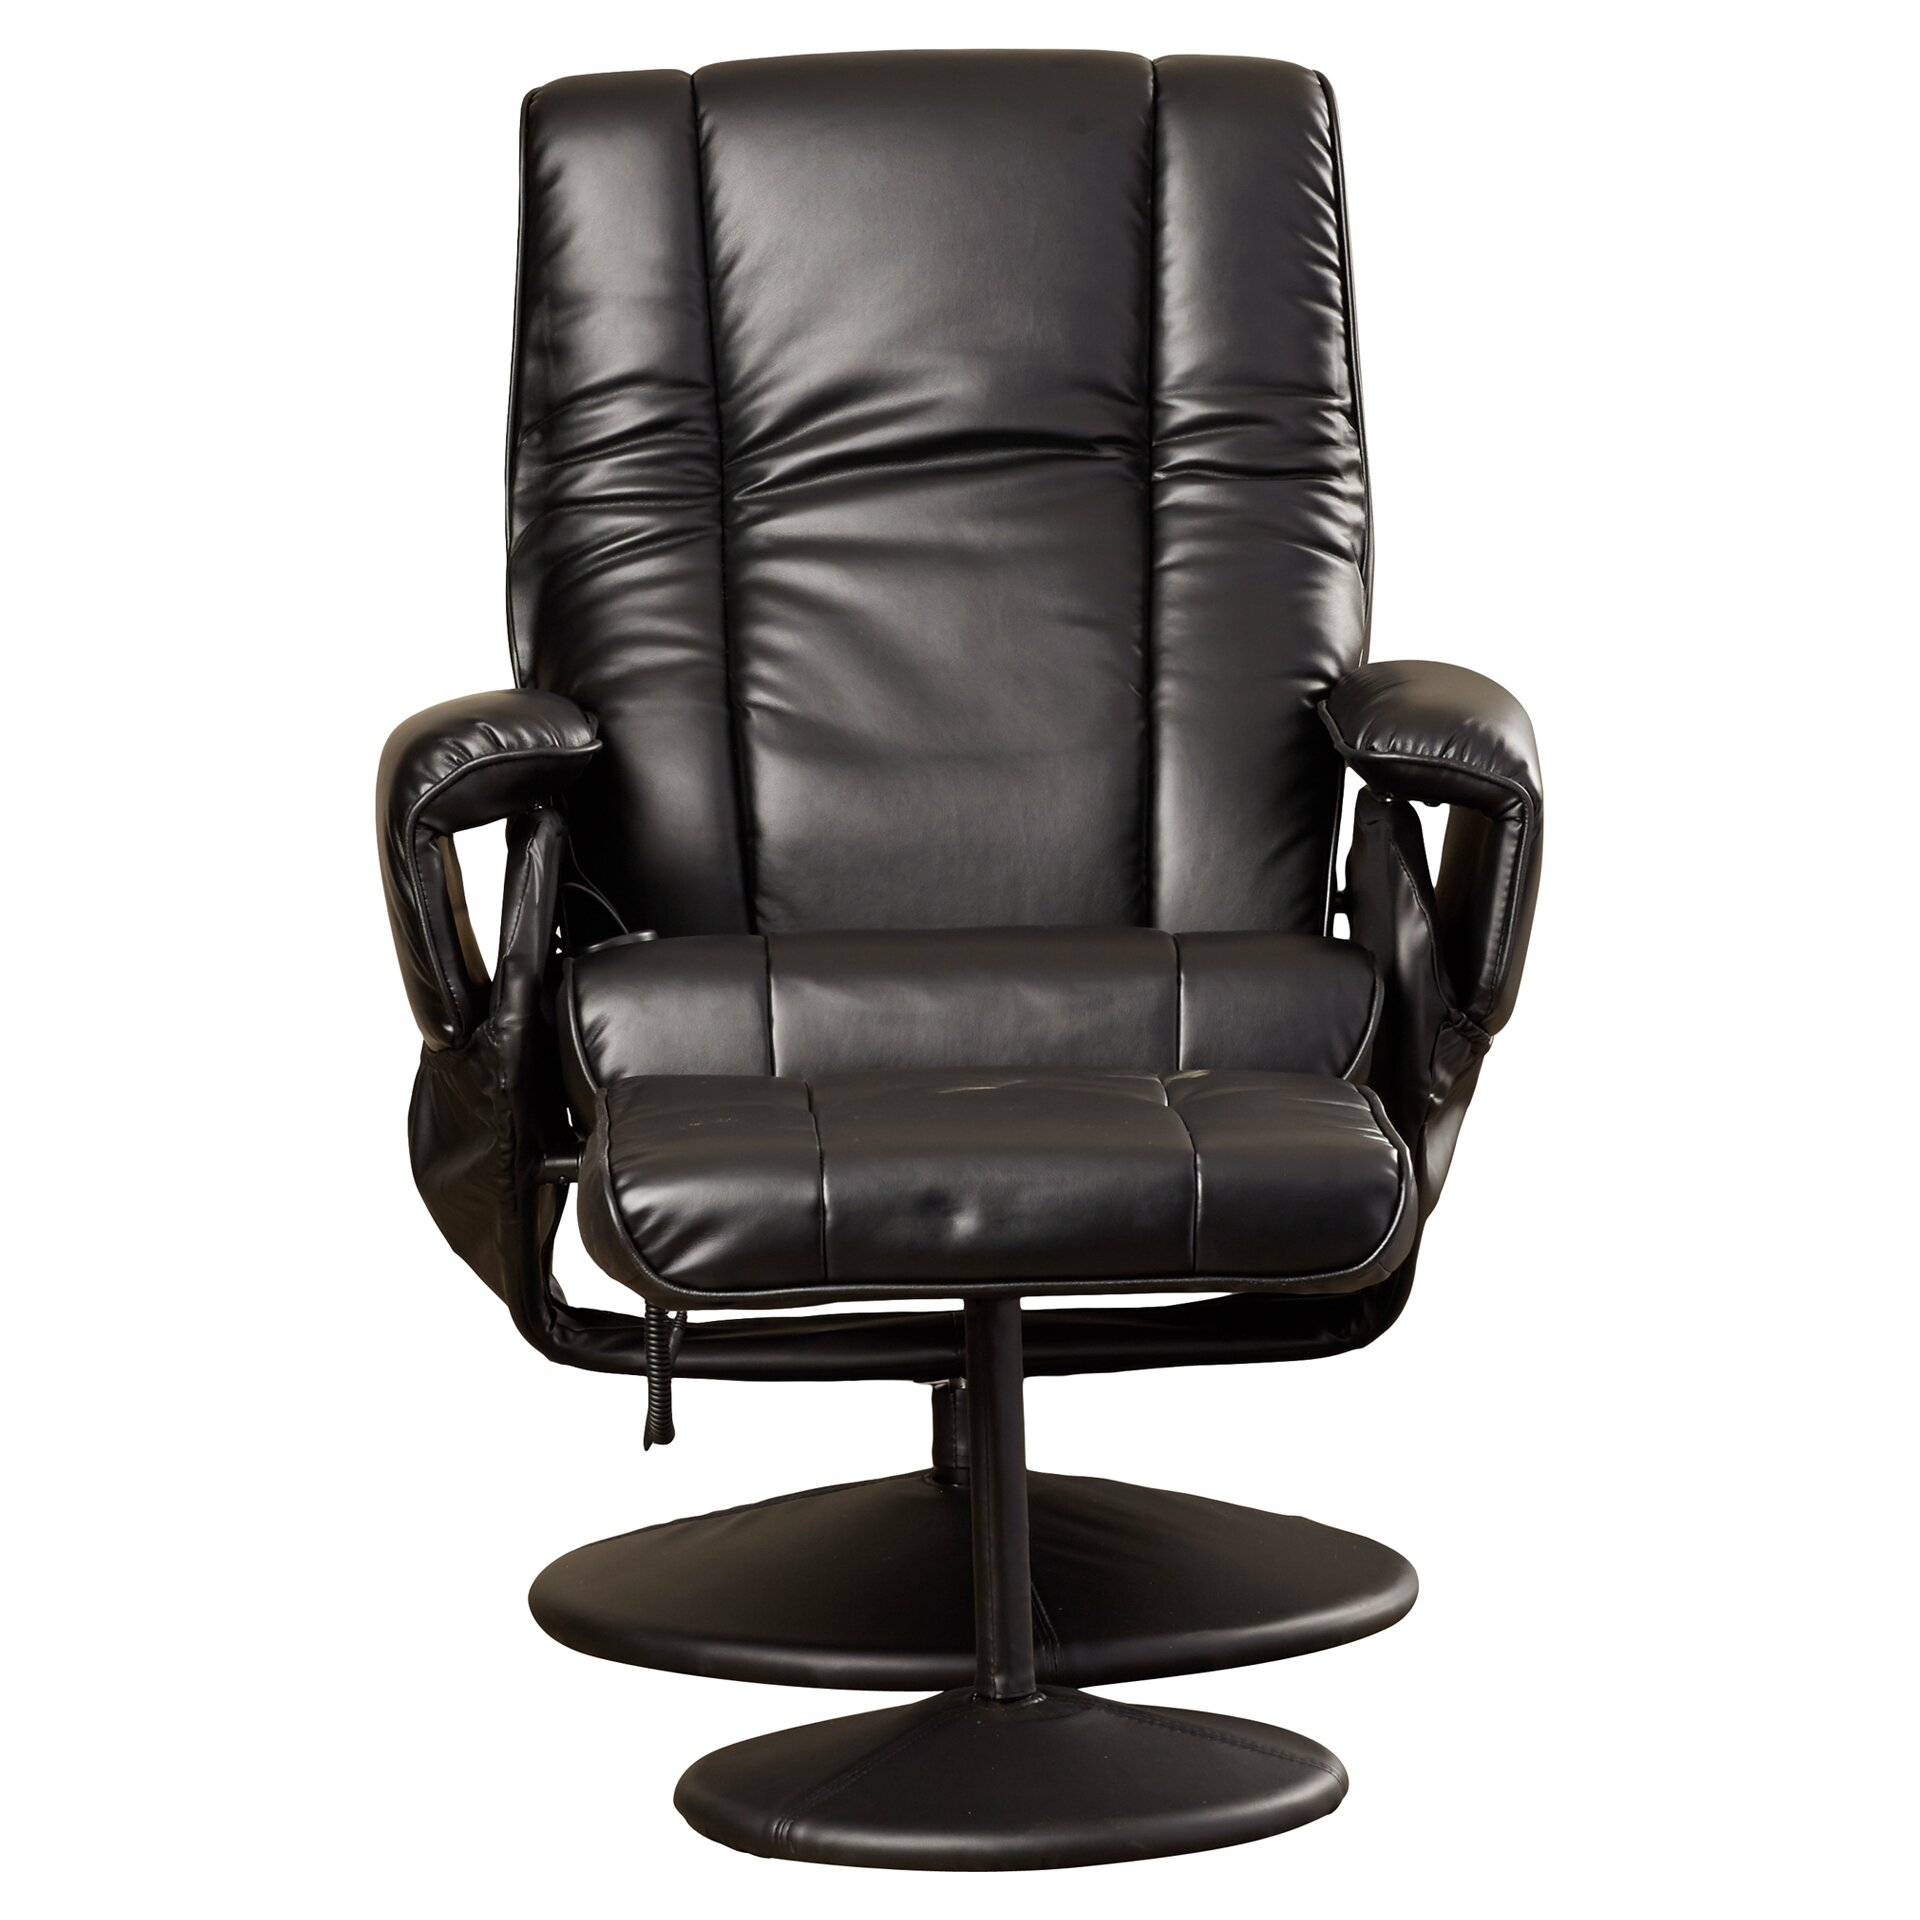 Awesome Pics Reclining Chair with Ottoman Chairs and Sofa Ideas